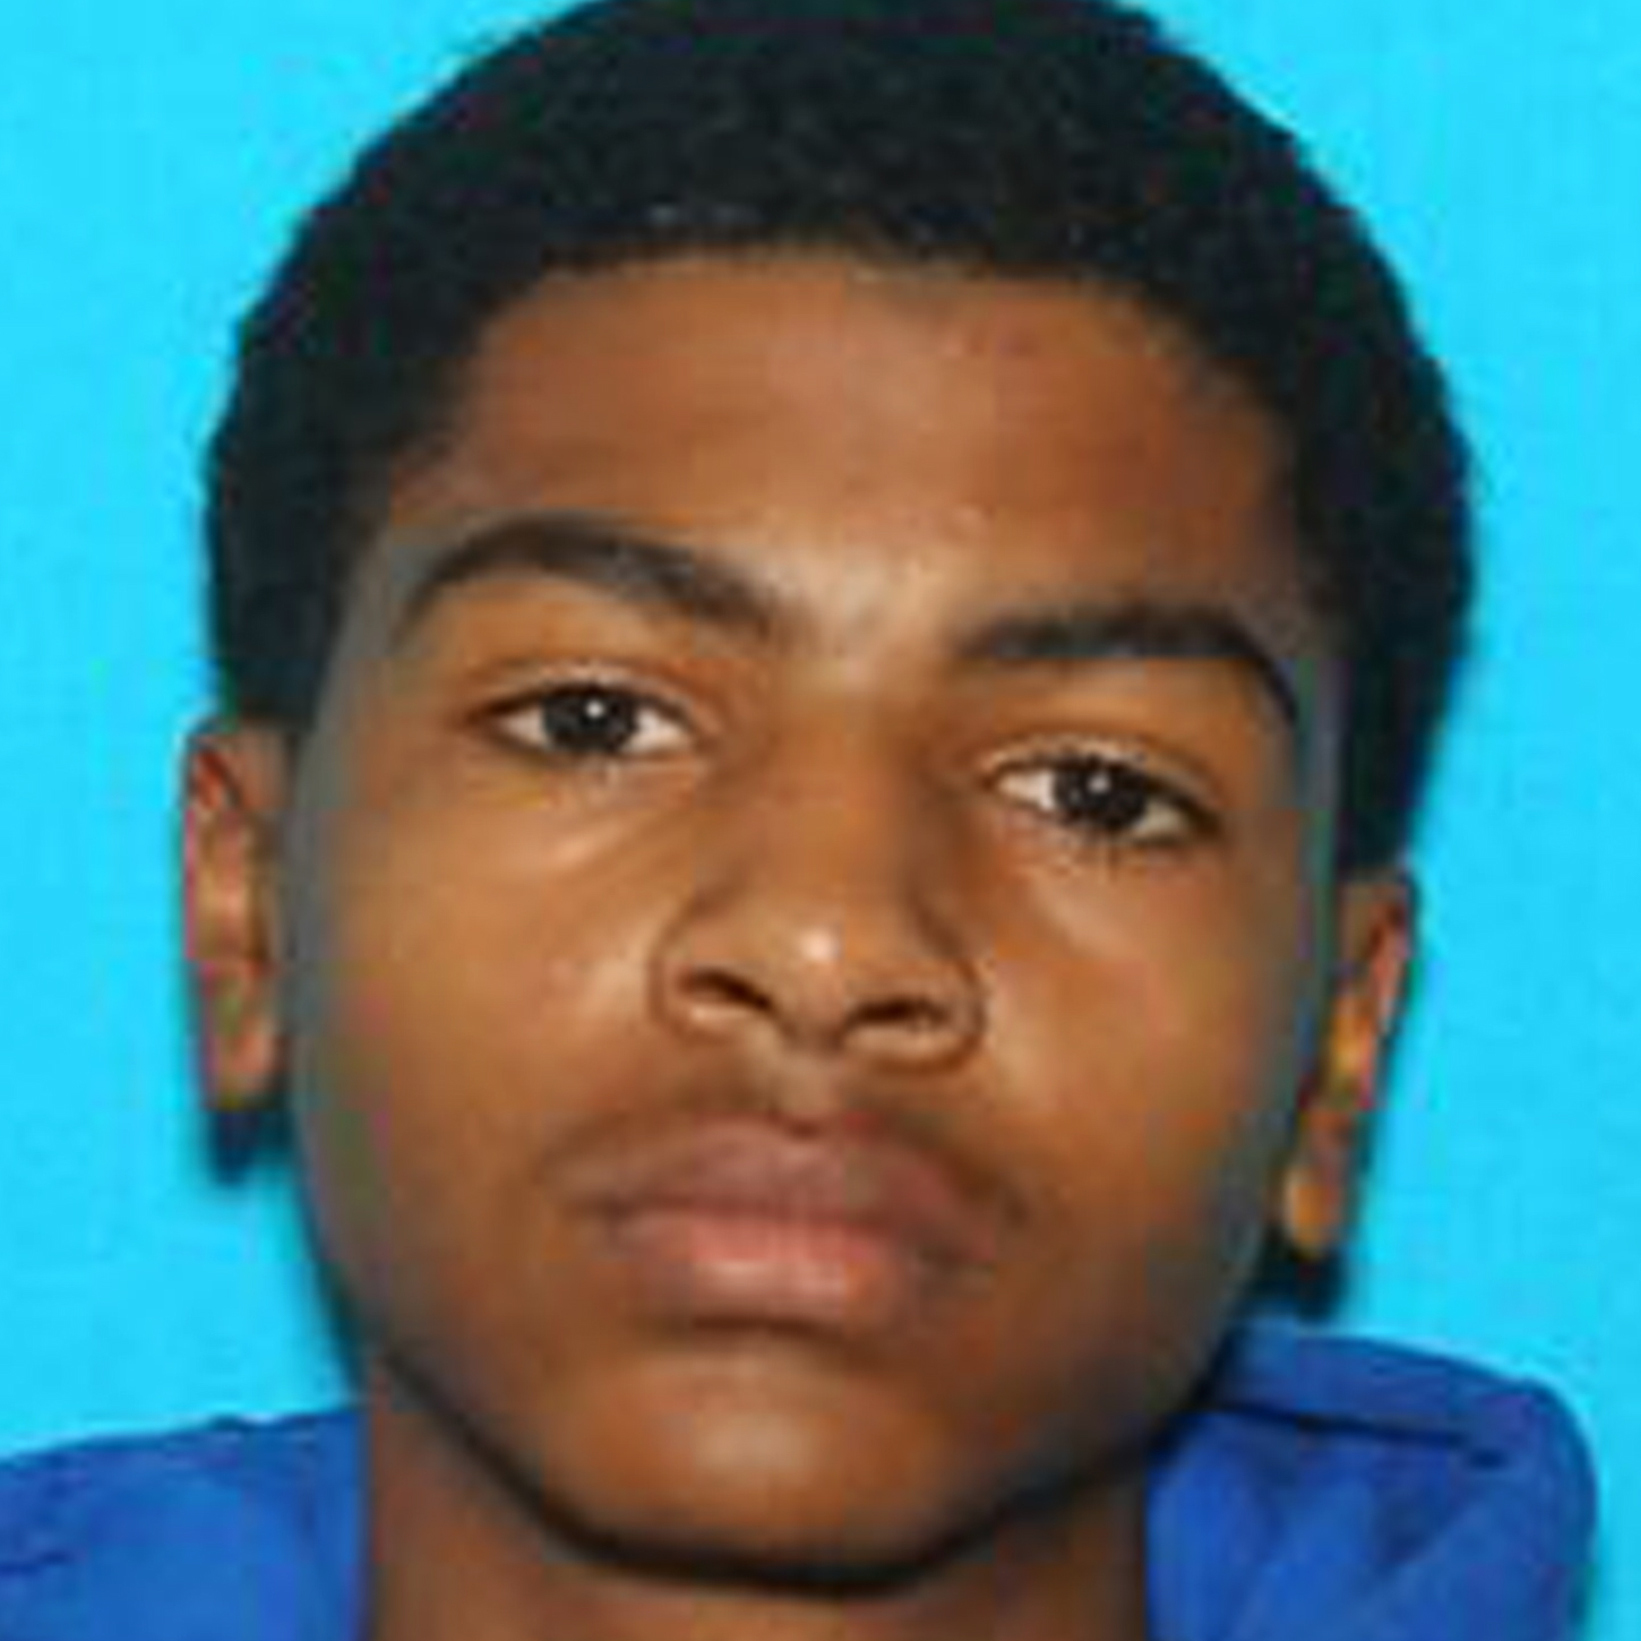 Police are searching for James Eric Davis Jr. identified as the suspect in two fatal shootings at Central Michigan University on Friday